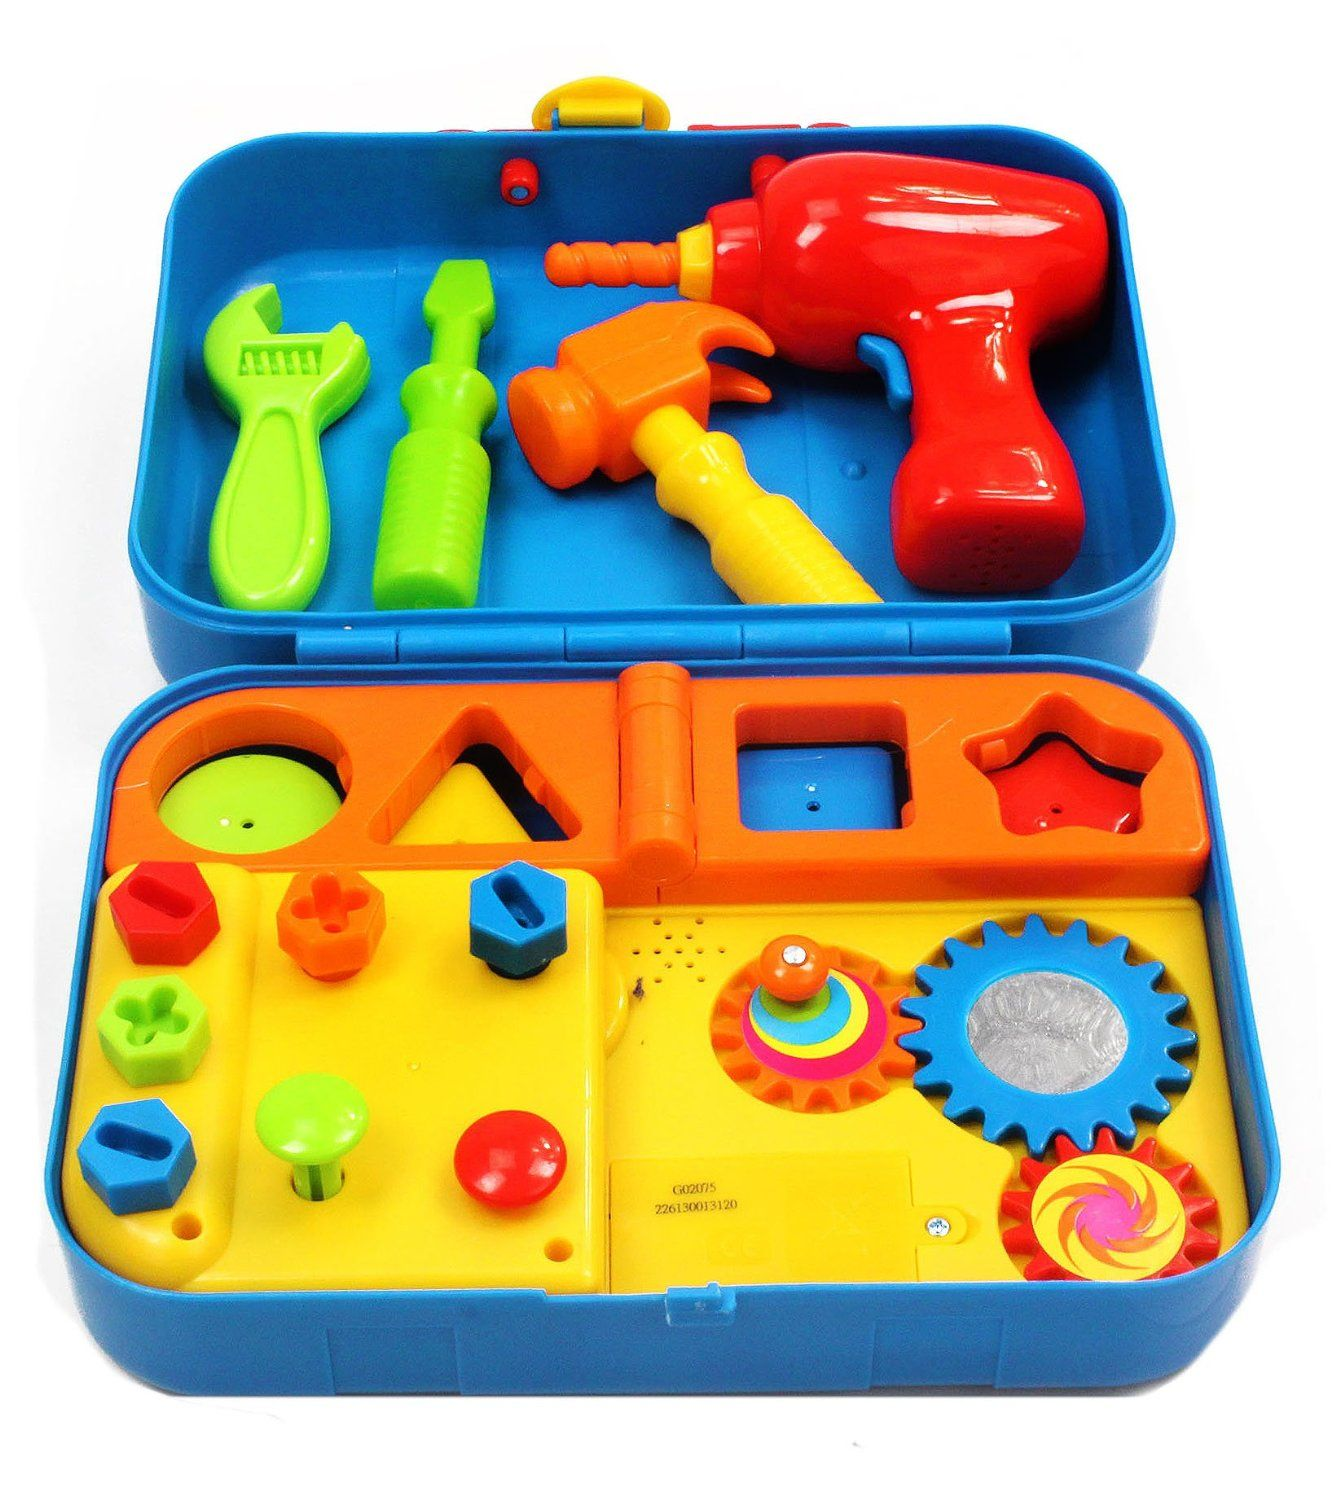 Toys For Boys Age 1 : Best gifts for year old boys in toolbox toy and